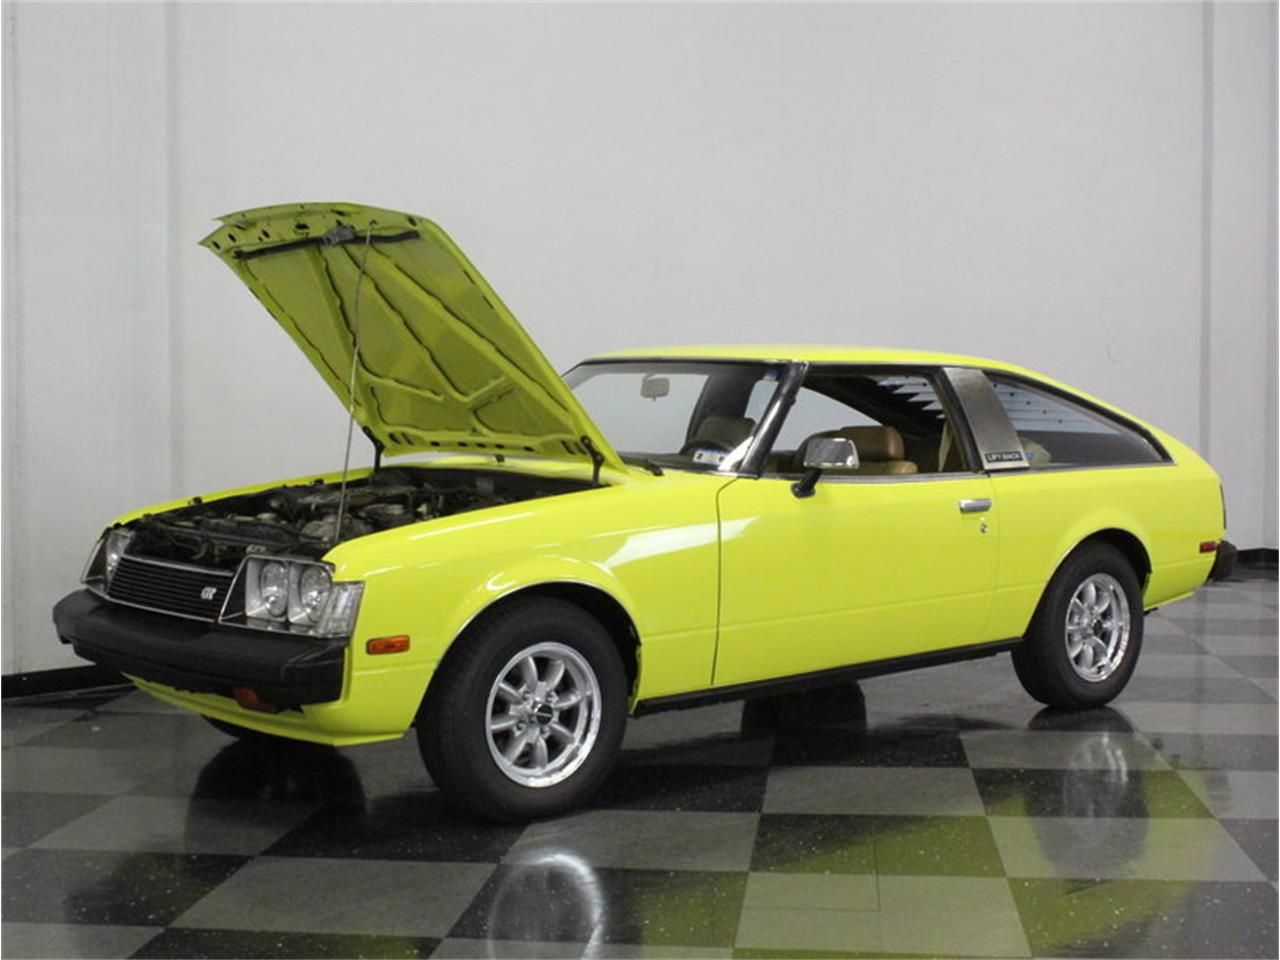 Large Picture of 1978 Toyota Celica located in Texas - $9,995.00 Offered by Streetside Classics - Dallas / Fort Worth - F6ZC